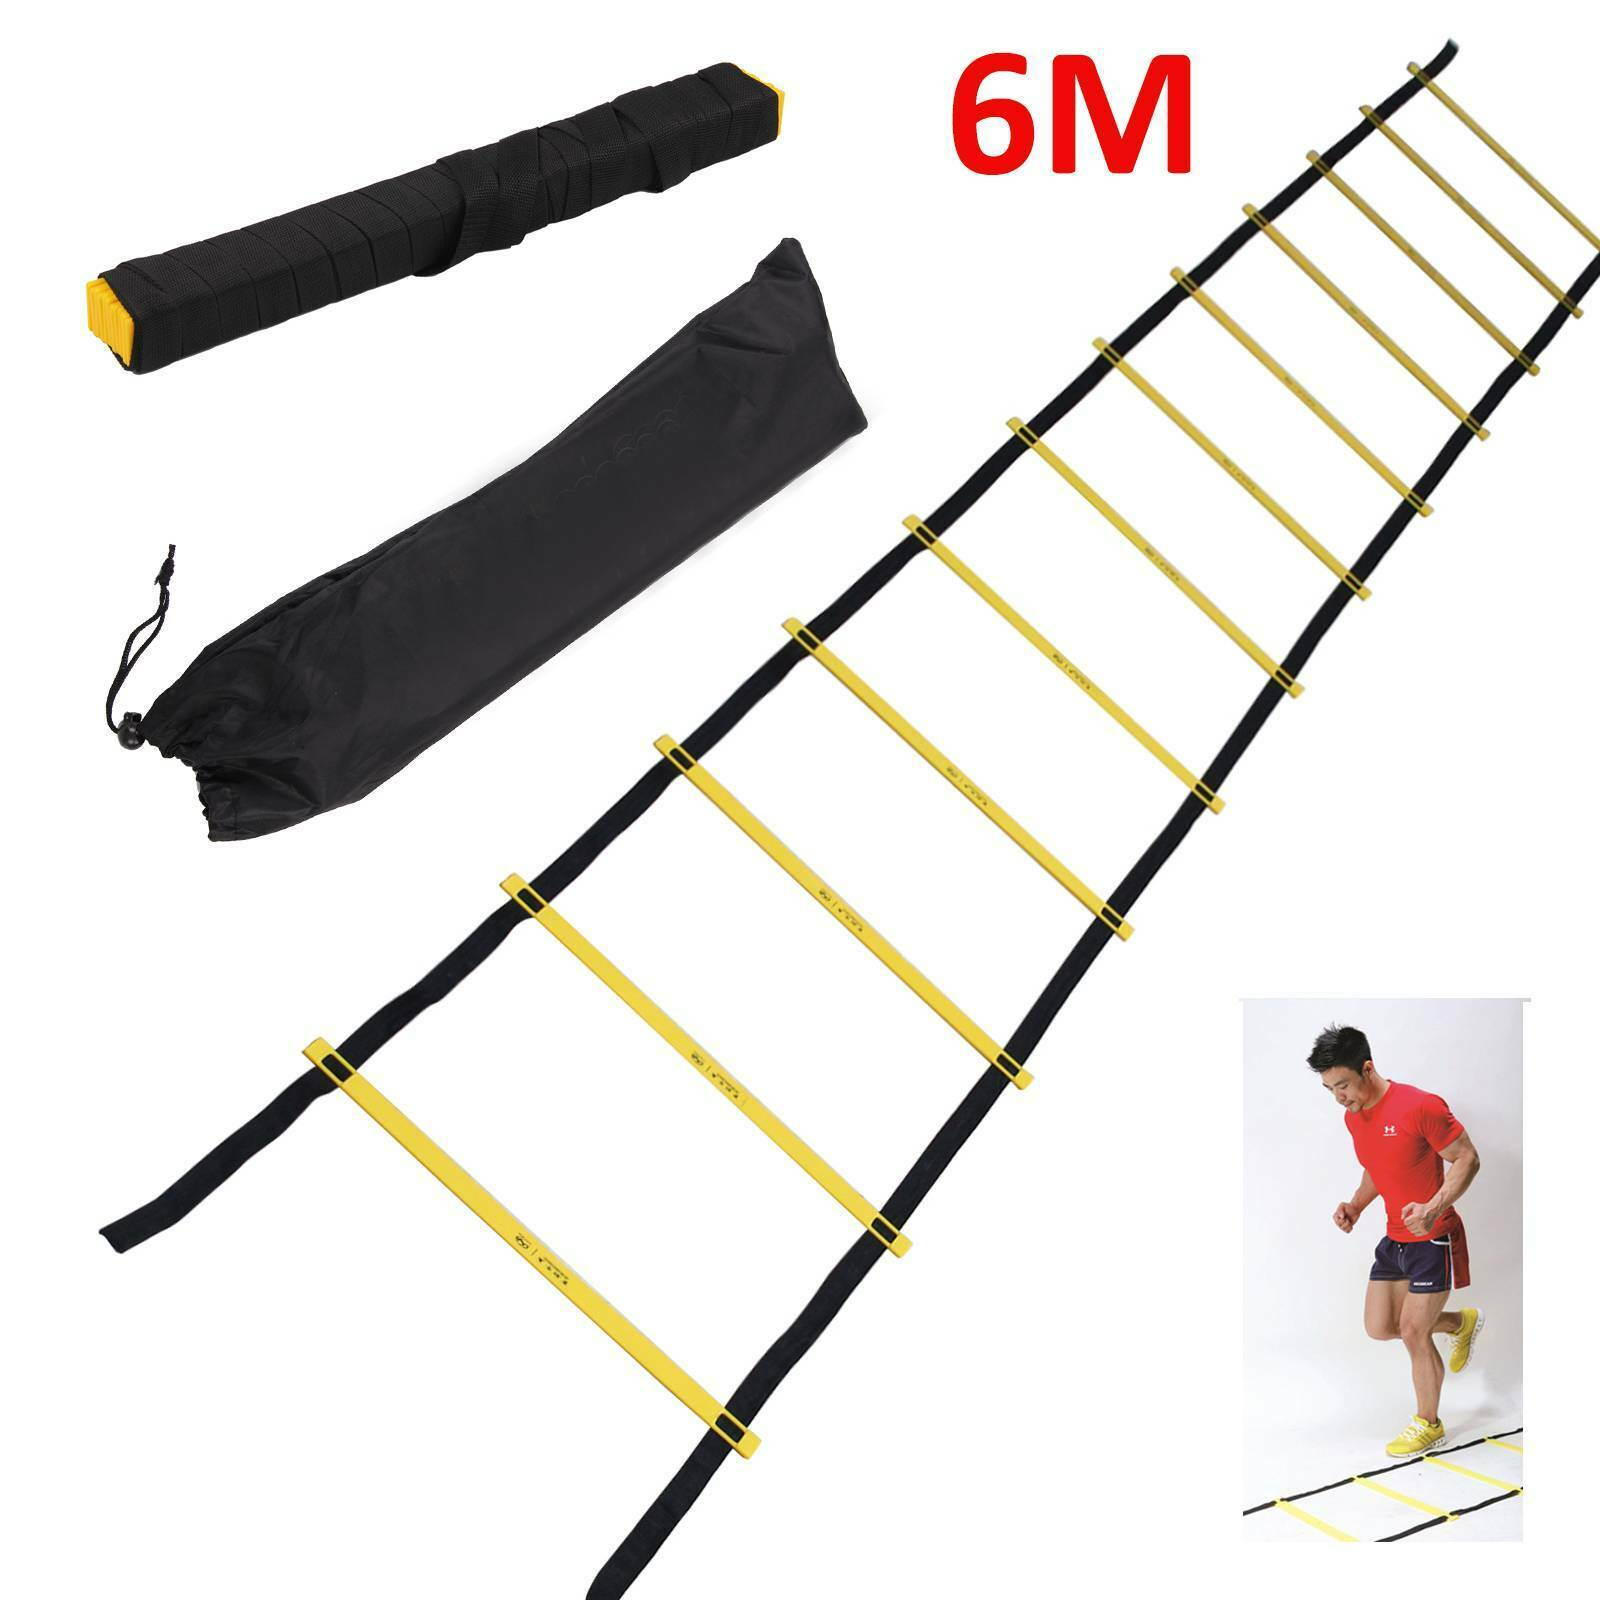 6M Football Training Rope Ladder Jump Lattice Ladder Obstacle Training Speed Energy Agility Ladder Pace Training Soft Ladder